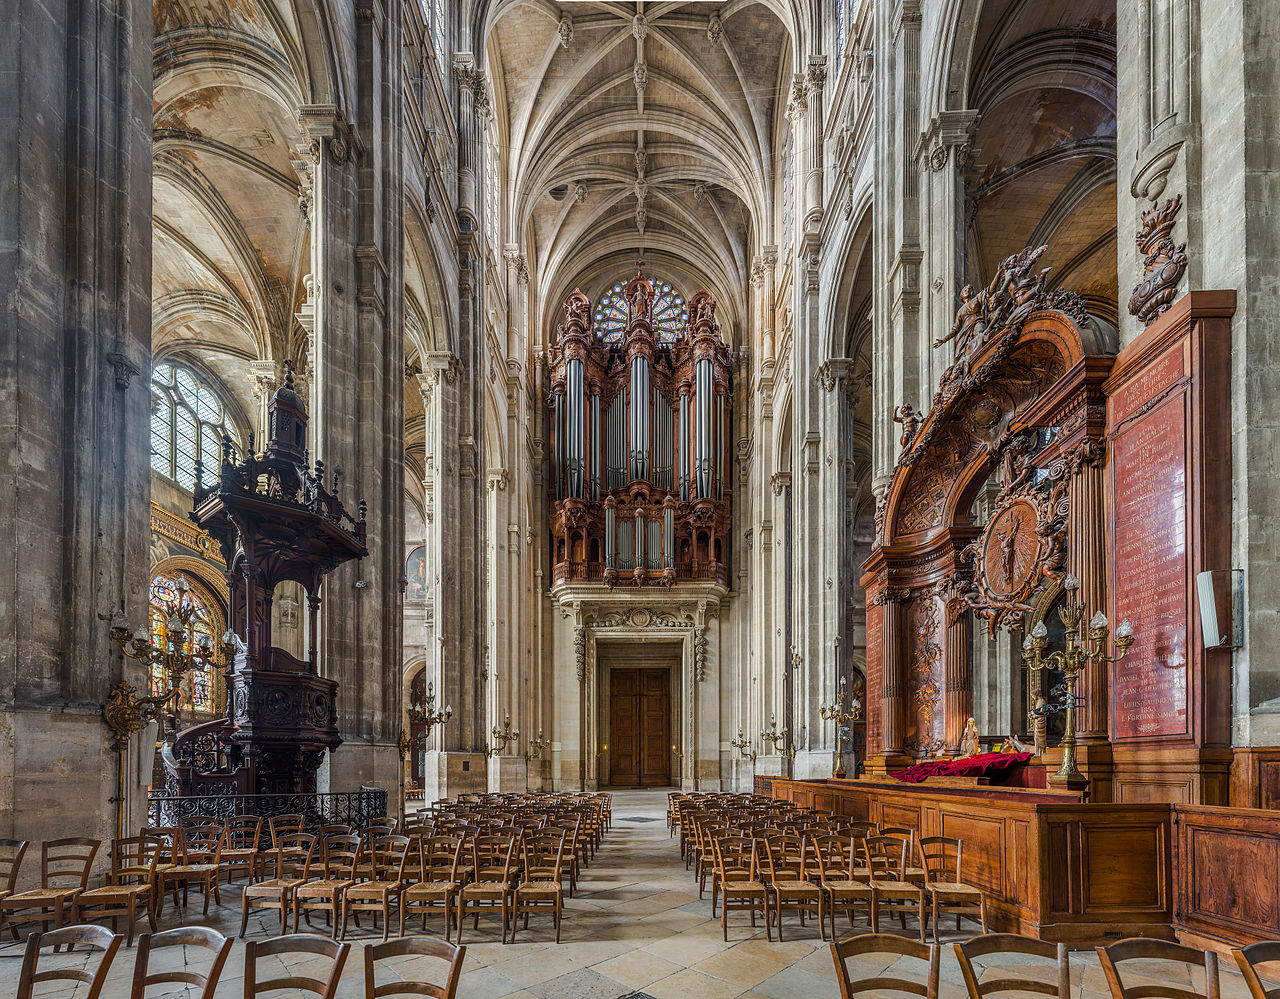 Church_of_St_Eustace_Organ_and_Pulpit,_Paris,_France_-_Diliff